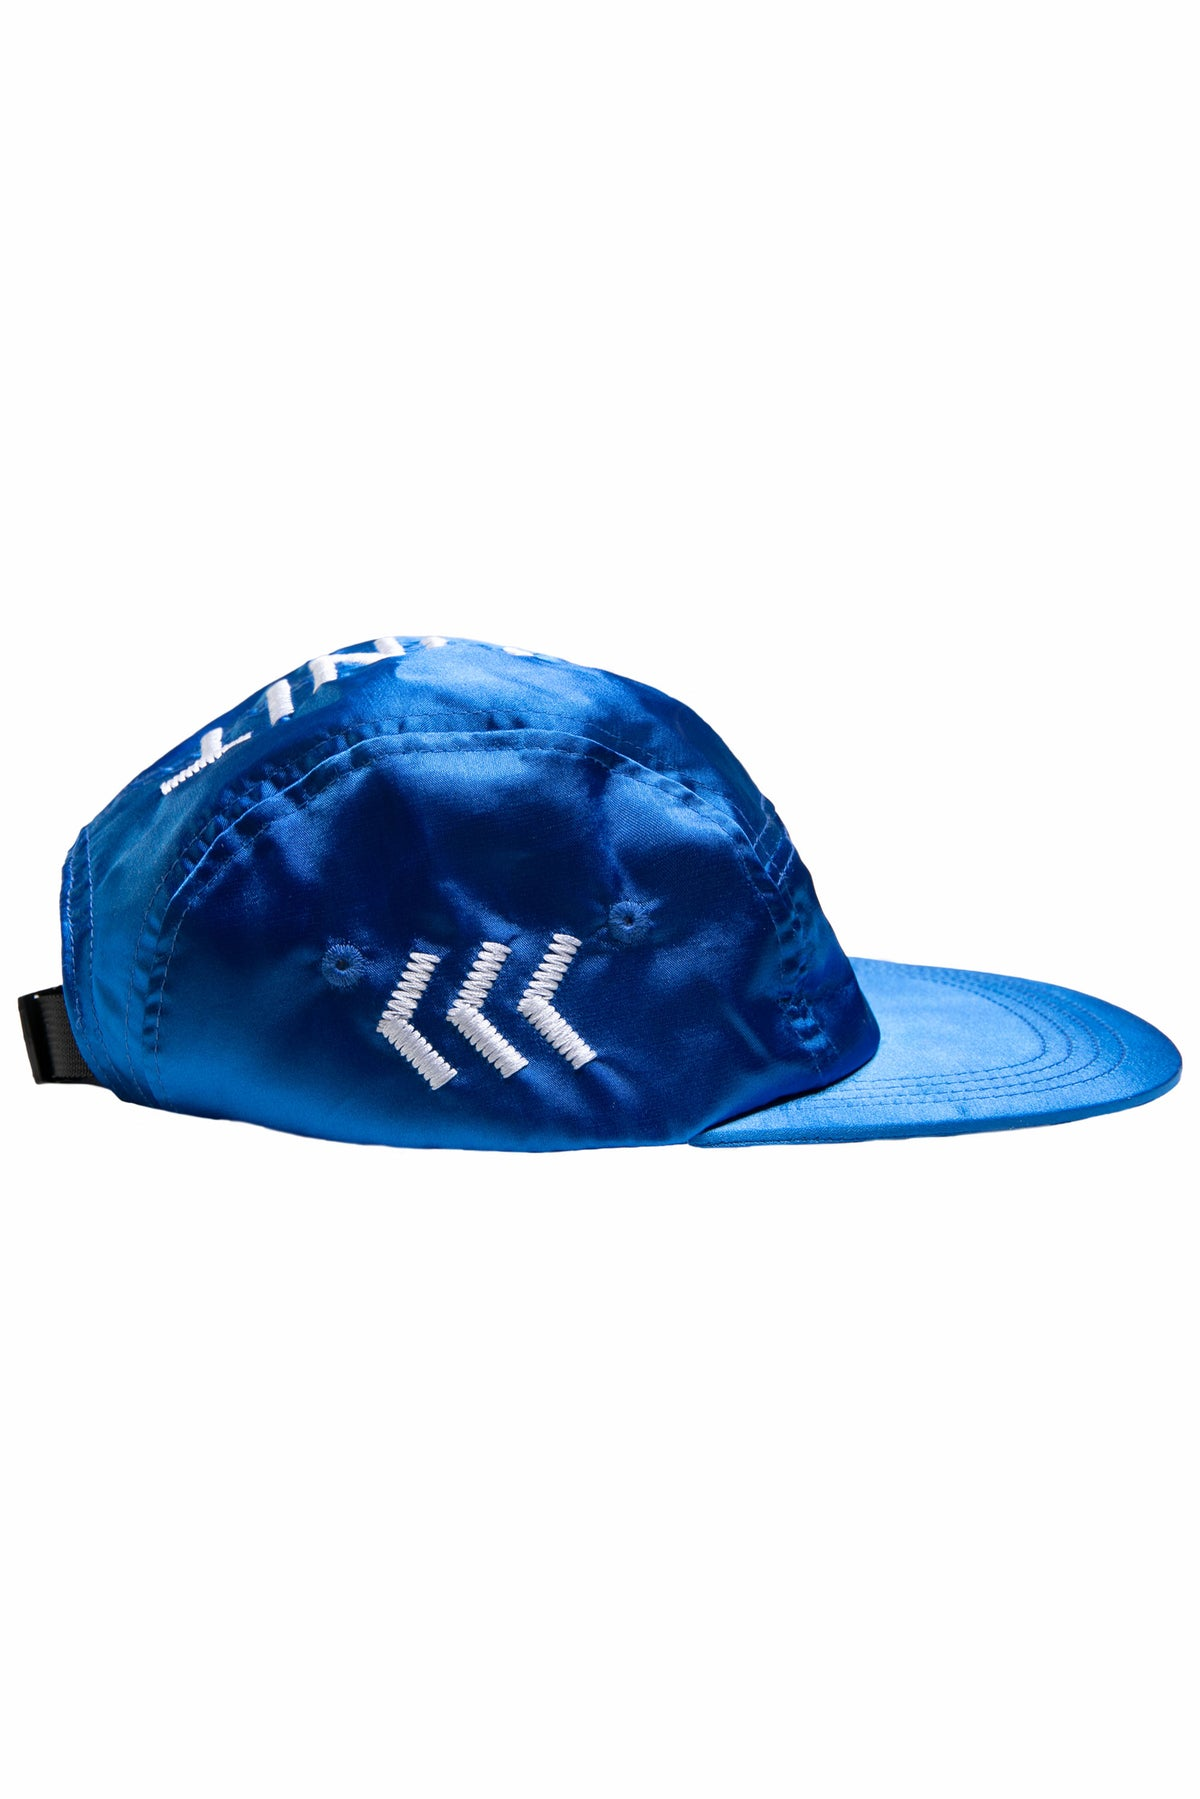 LOGO CAMP CAP | BLUE